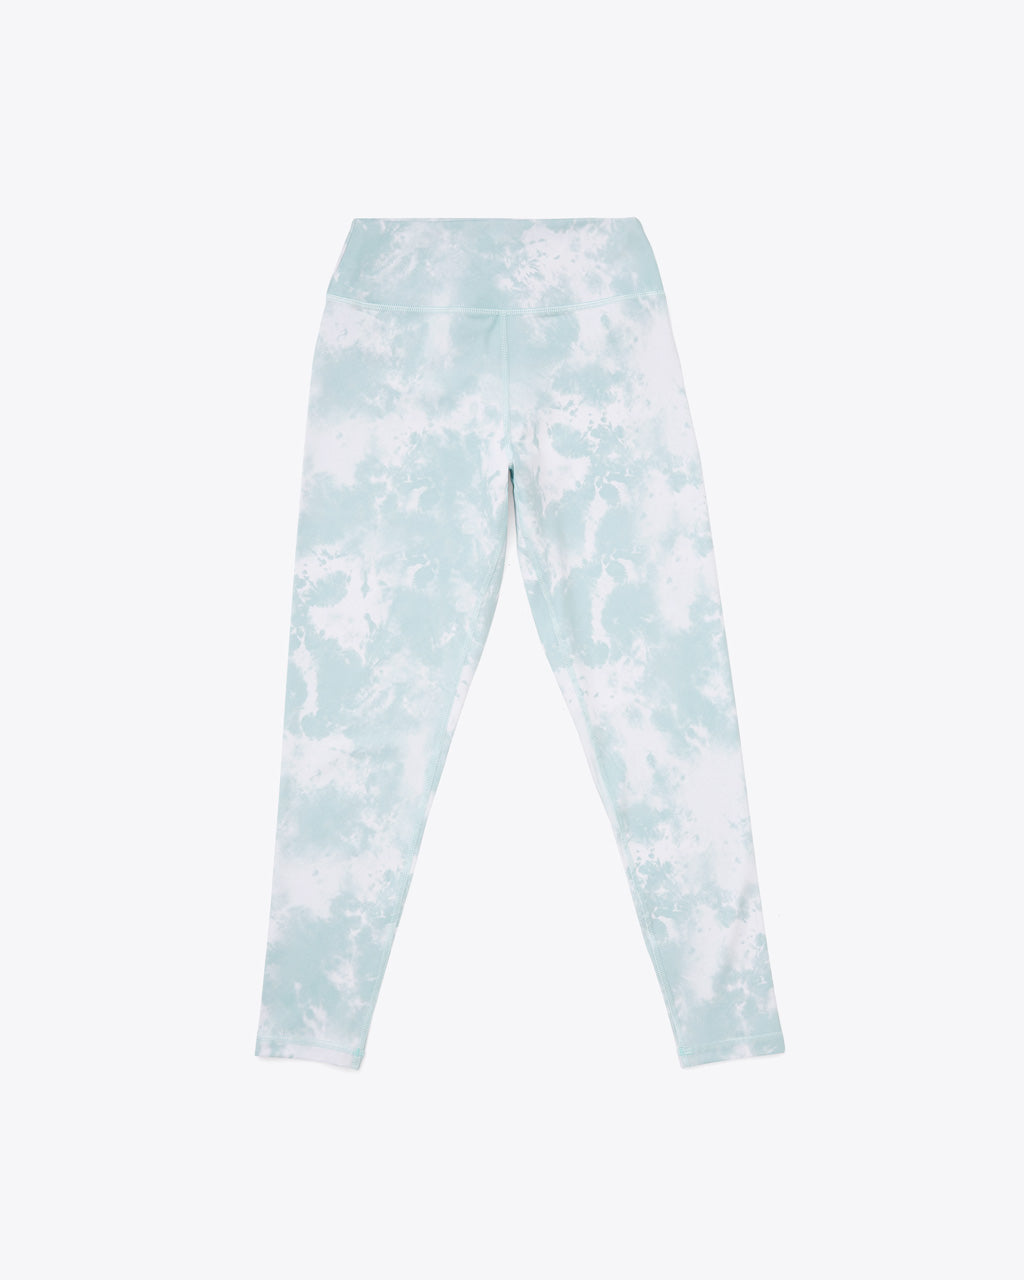 leggings in seafoam and white tie dye print.